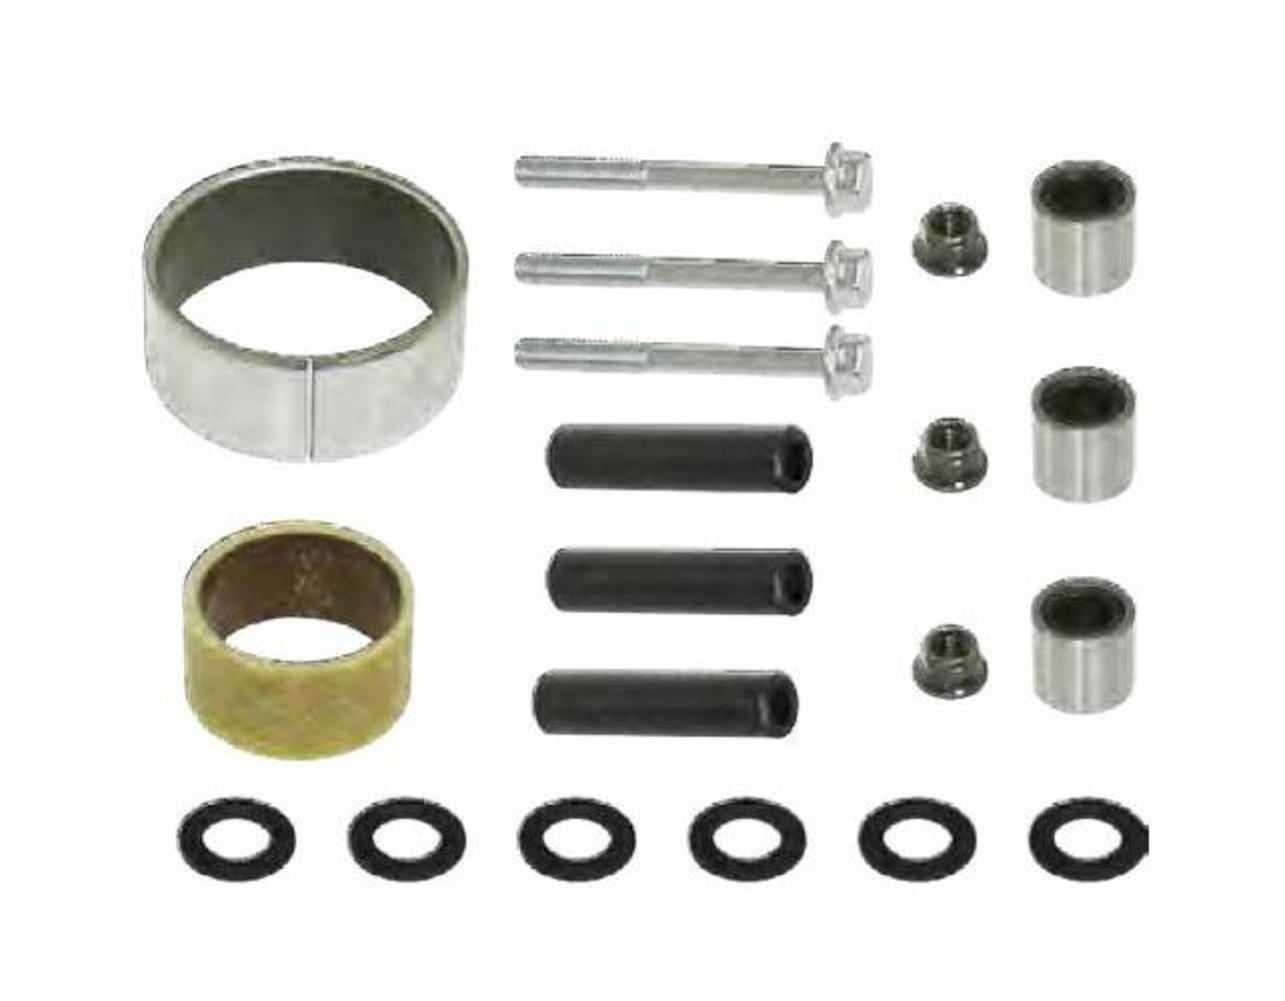 Primary Clutch Spring~2004 Yamaha RX10M RX-1 Mountain